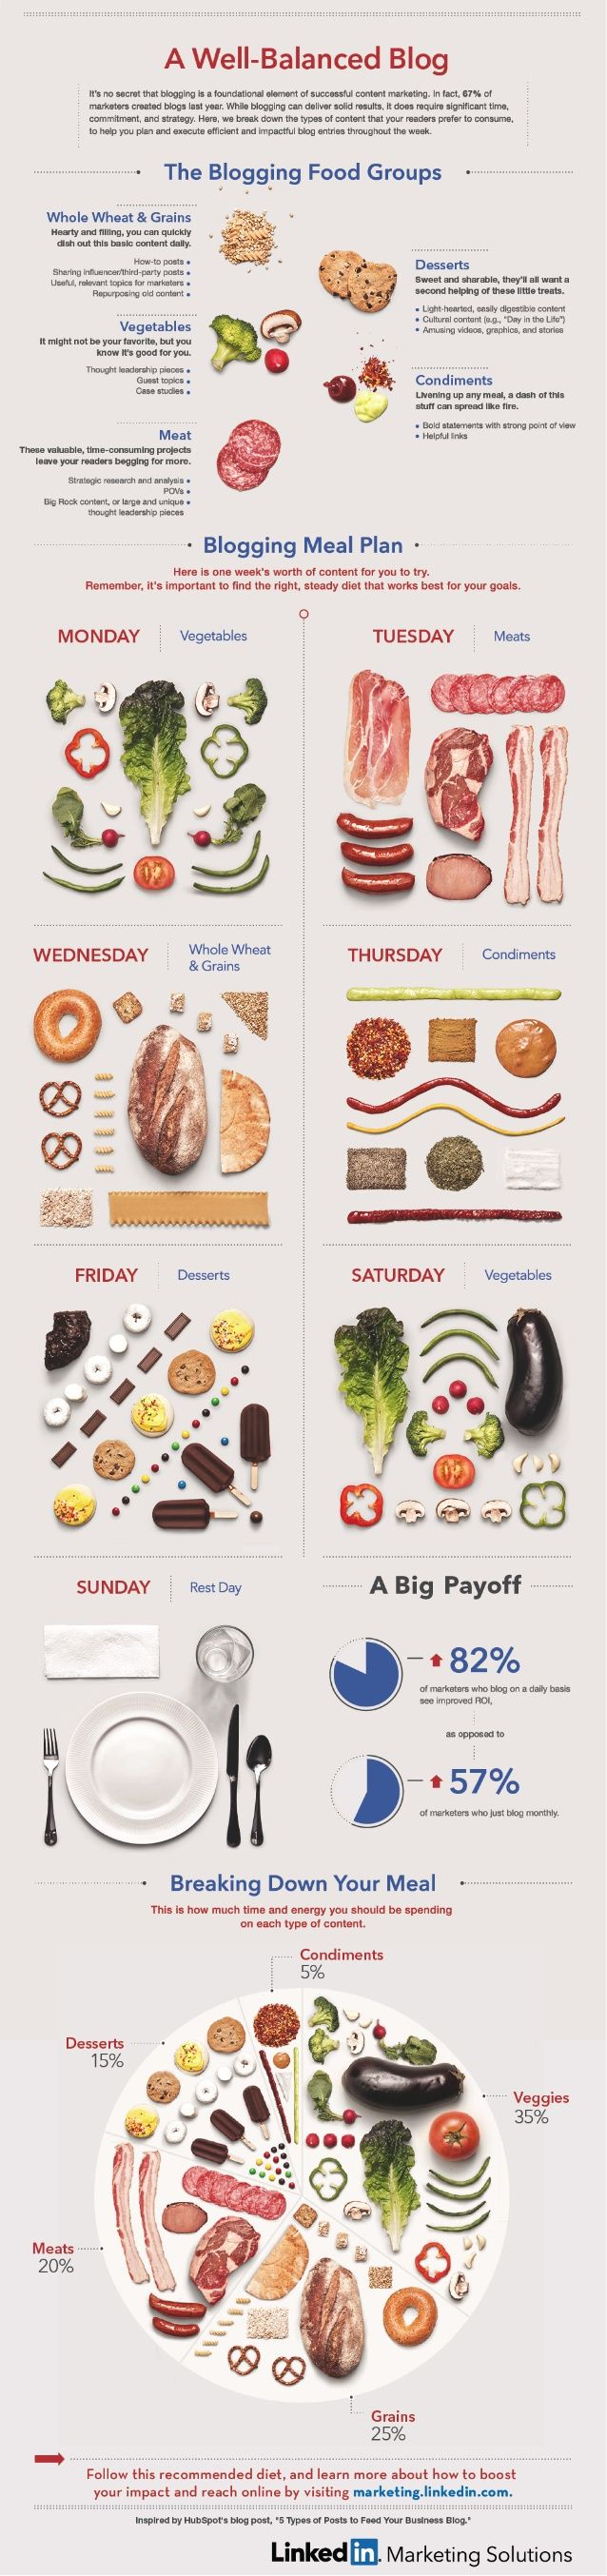 The Blogging Food Groups: A Well-Balanced Diet of Content [INFOGRAPHIC] by LinkedIn Marketing Solutions via slideshare